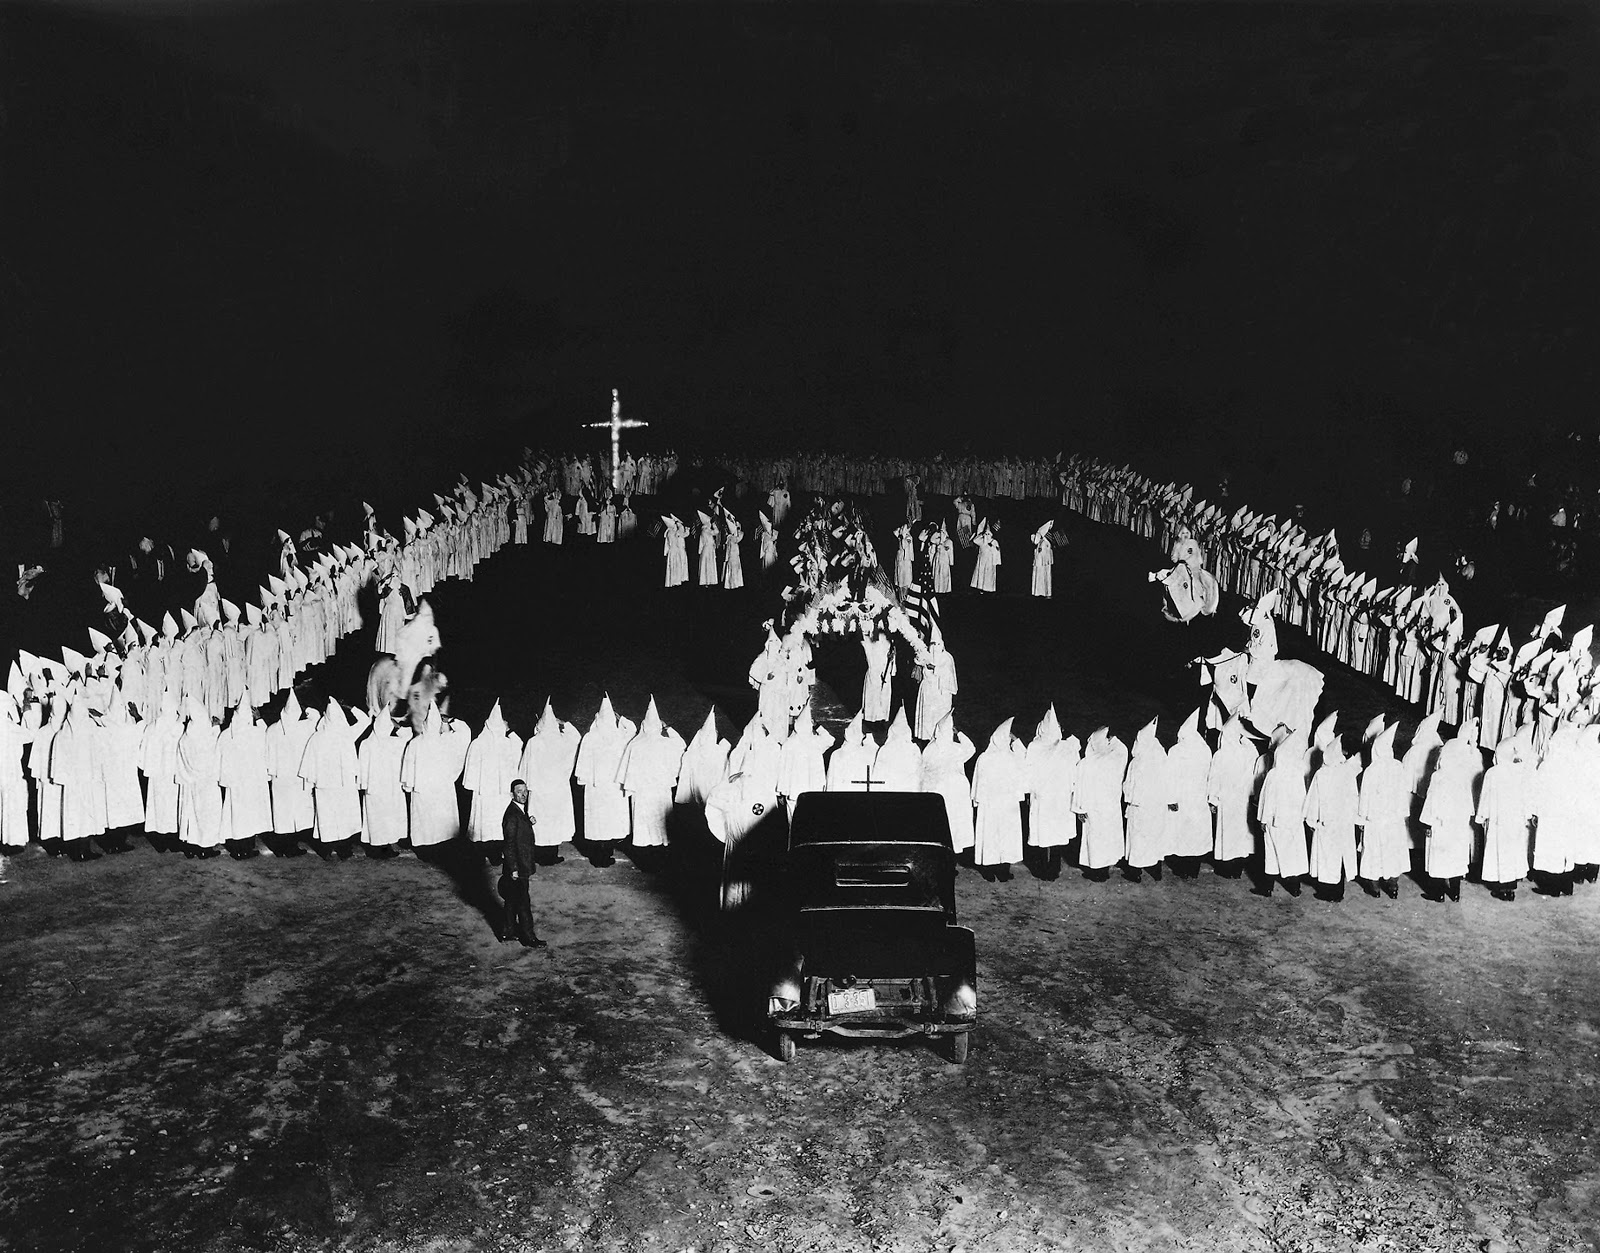 the inception and history of the ku klux klun or kkk